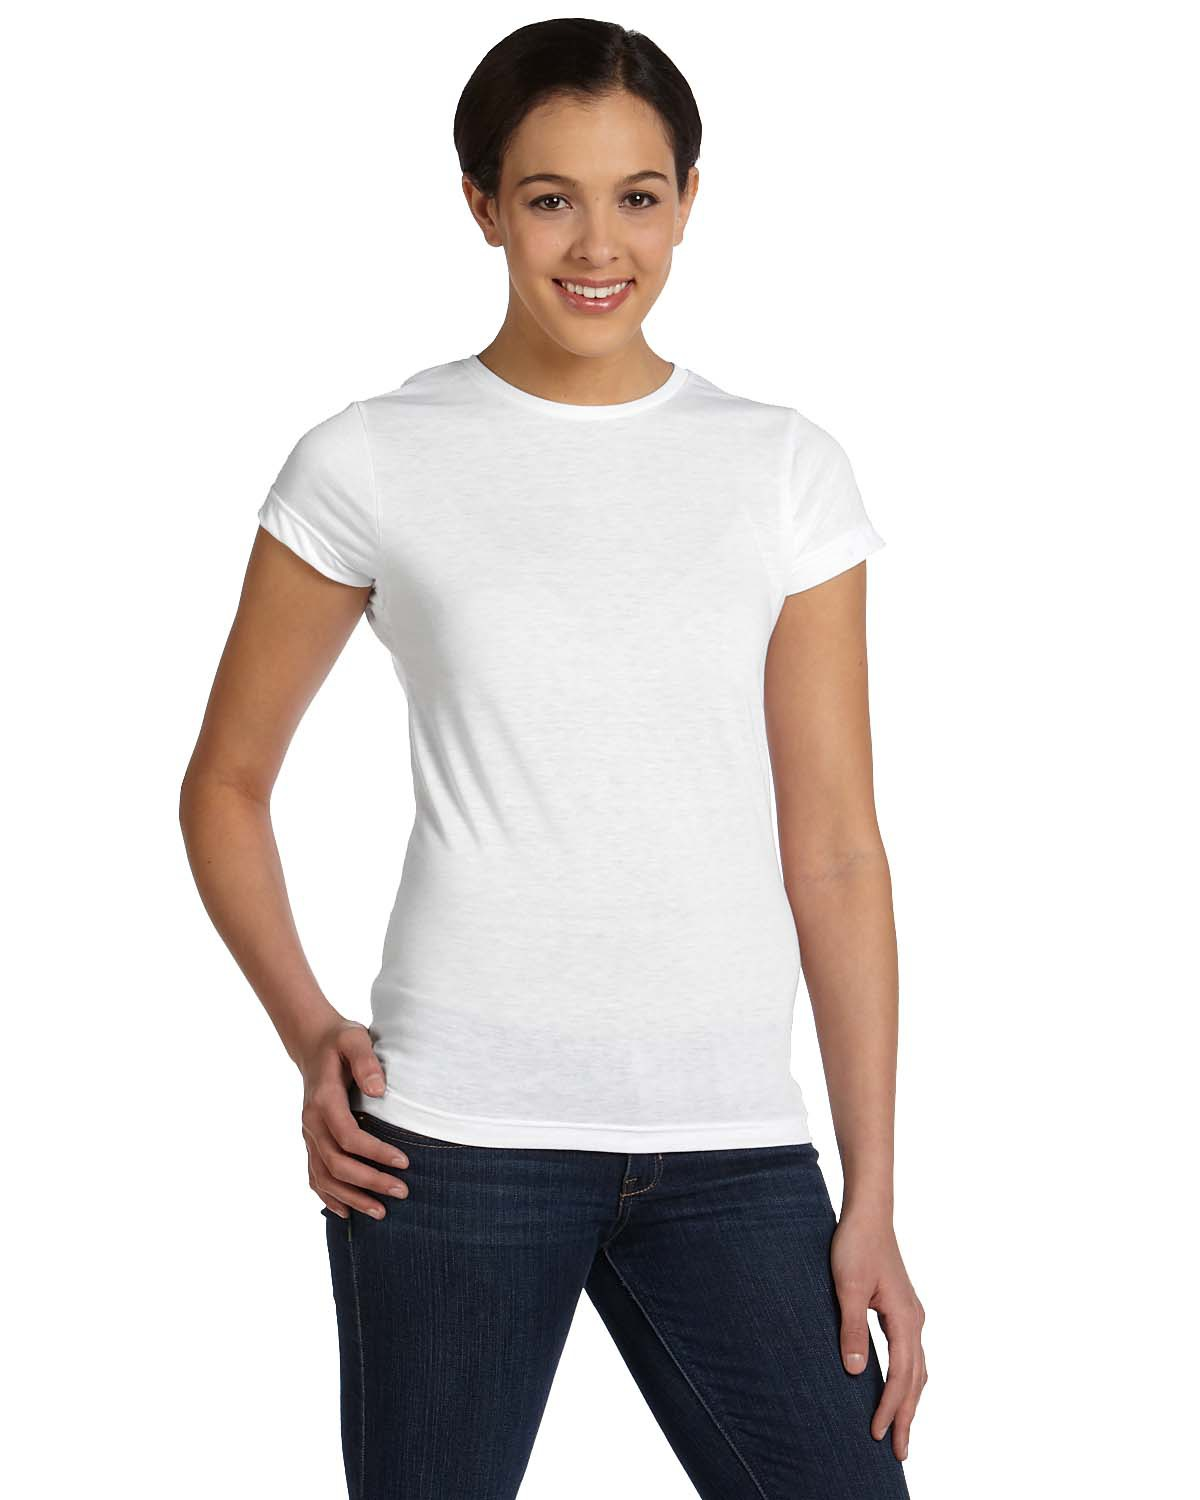 Ladies' Junior Fit Sublimation Polyester T-Shirt